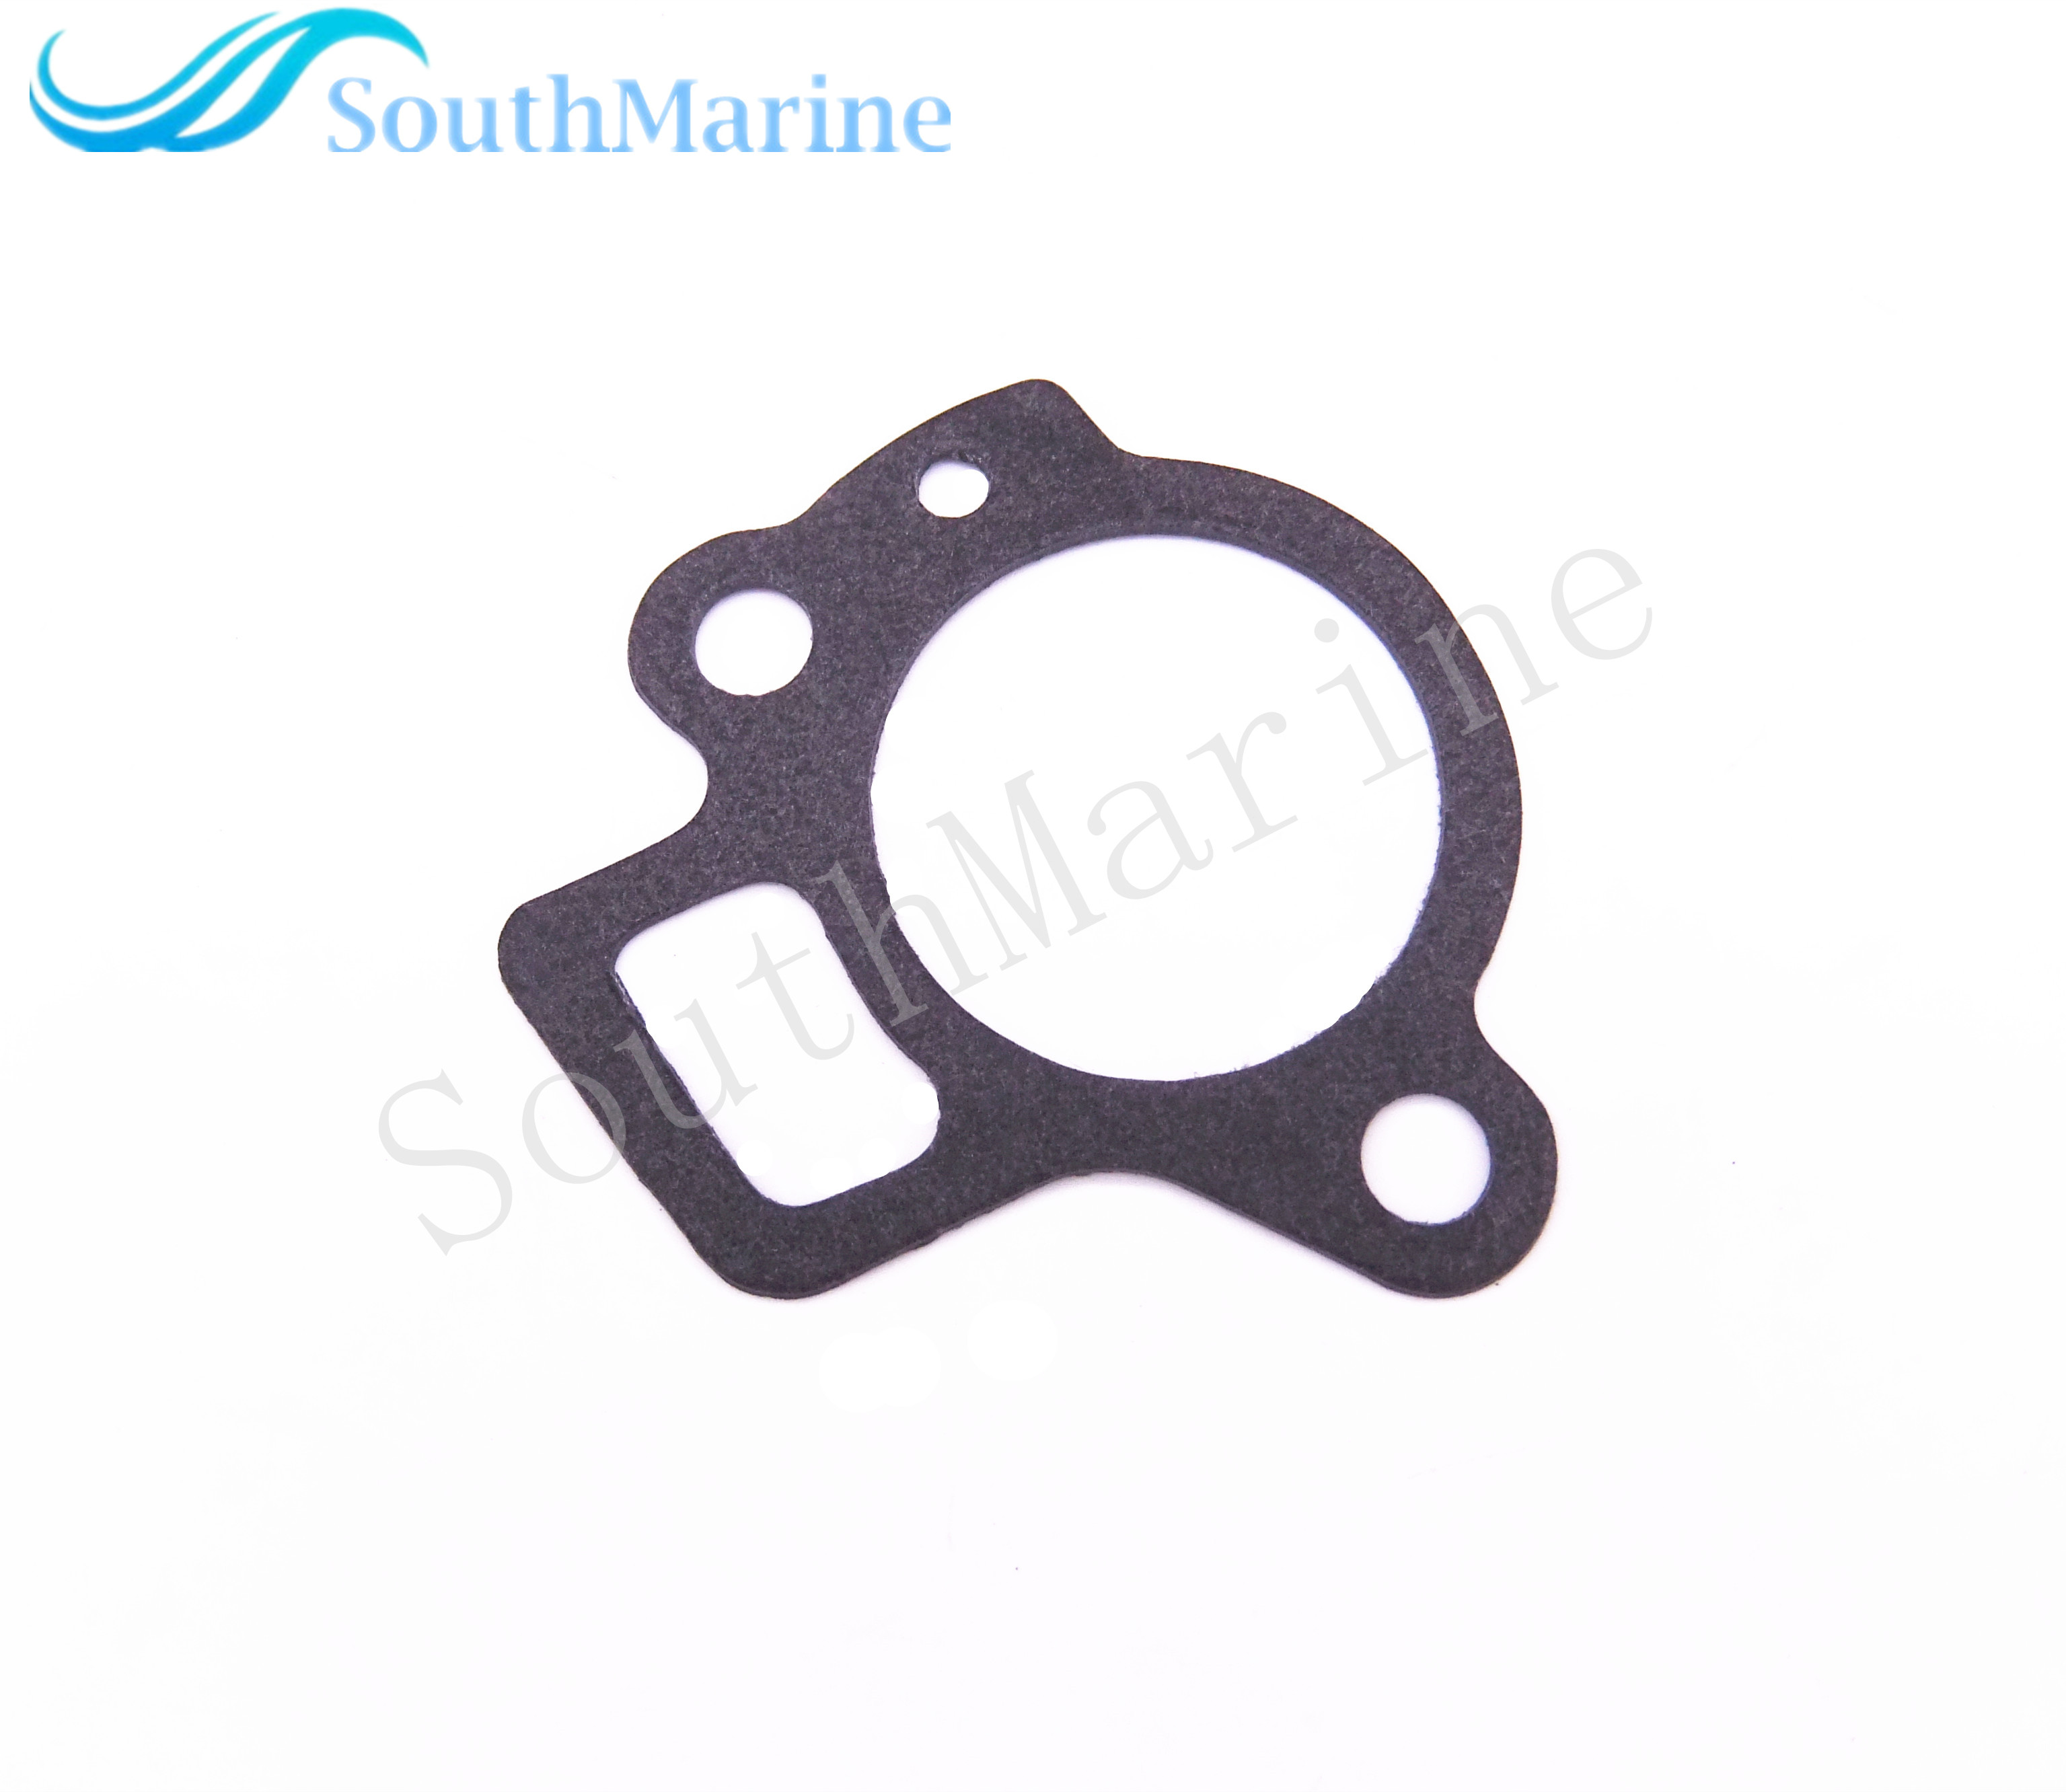 Boat Motor 62Y-12414-00 Thermostat Cover Gasket For Yamaha 4-Stroke F15 F25 F30 F40 F50 F60 T9.9 T25 T60 Outboard Engine